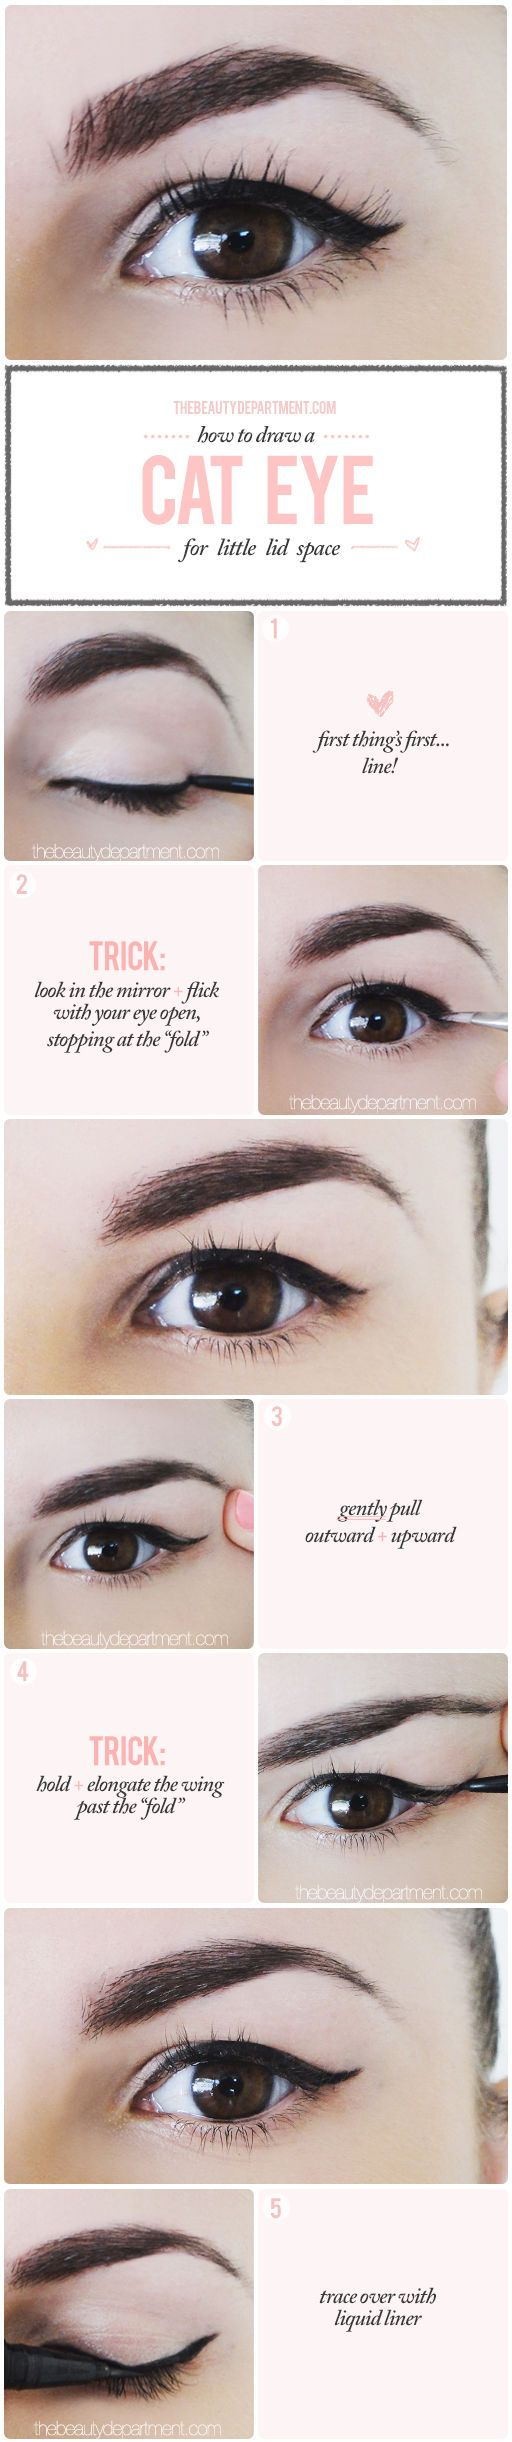 WINGED LINER FOR A DROOPY LID  Winged liner Beauty department and